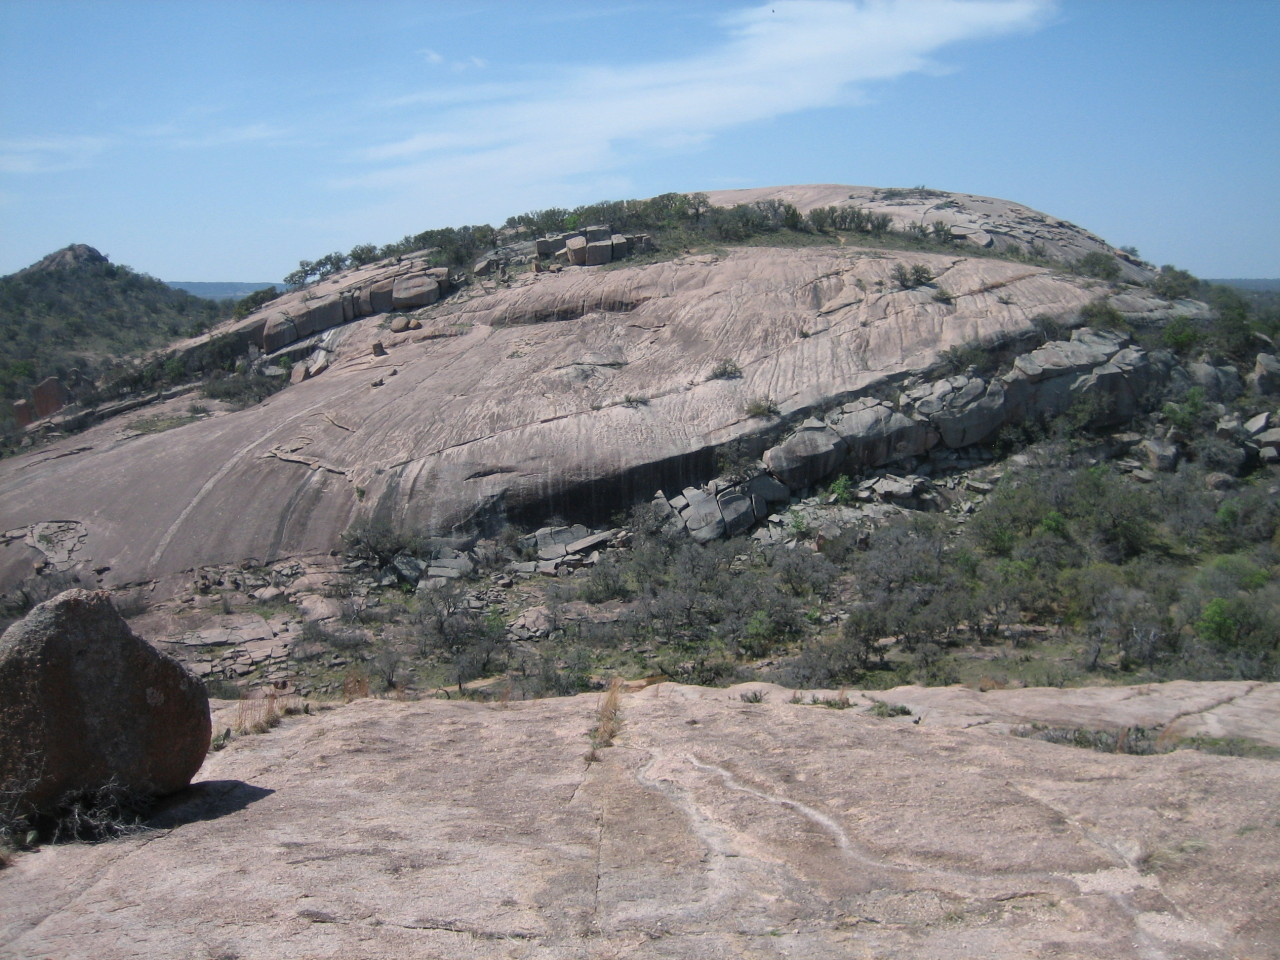 "Enchanted Rock State Park [March 2013] When asked about the reason for coming to Austin Texas, most were surprised to learn that I wasn't there for Sxsw.  ""Just plain business trip"", I said, ""and a bit of climbing on the side"". [[MORE]] Being 2 hours drive away, Enchanted Rock is pretty much the only place around Austin for trad. I had my heart set to check out the place, but finding climbing partners in a foreign city could be difficult.  But then I thought - how cool would it be to organize a climbing trip through Meetup, and make some new friends along the way! Sure enough, a dozen people signed up without knowing that me, the ""organizer"", is not even a local. And within hours of landing, I was hanging out with a bunch of awesome people and was happily jamming my way up granite walls. The climbing there reminded me of JTree cracks and Squamish slabs. In fact, most of us have never been there before. We were there for the entire day, sampling everything from tips to OW and straight-in cracks to friction slab. To top it off, we stopped by Cooper's Old Time Pit at Llano for some authentic Texas all-meat BBQ. I came back again the next day with Eric, whom I met through erockonline, to climb a bunch of classic lines in the park. Yeah, this place was that good. Contrary to my stereotype about the Midwest, most of the people here in Austin are actually very friendly (except for those who designed the highways and roads).  The vibe is chill and the bars are cool. Hopefully I will be back again for more climbing and of course, the BBQ.  Grass Crack on the left and scary looking OW on the right at Triple Crack Sanctuary Fear of Flying, a WIDE crack that most mortals on TR would just lieback the crap out of it"